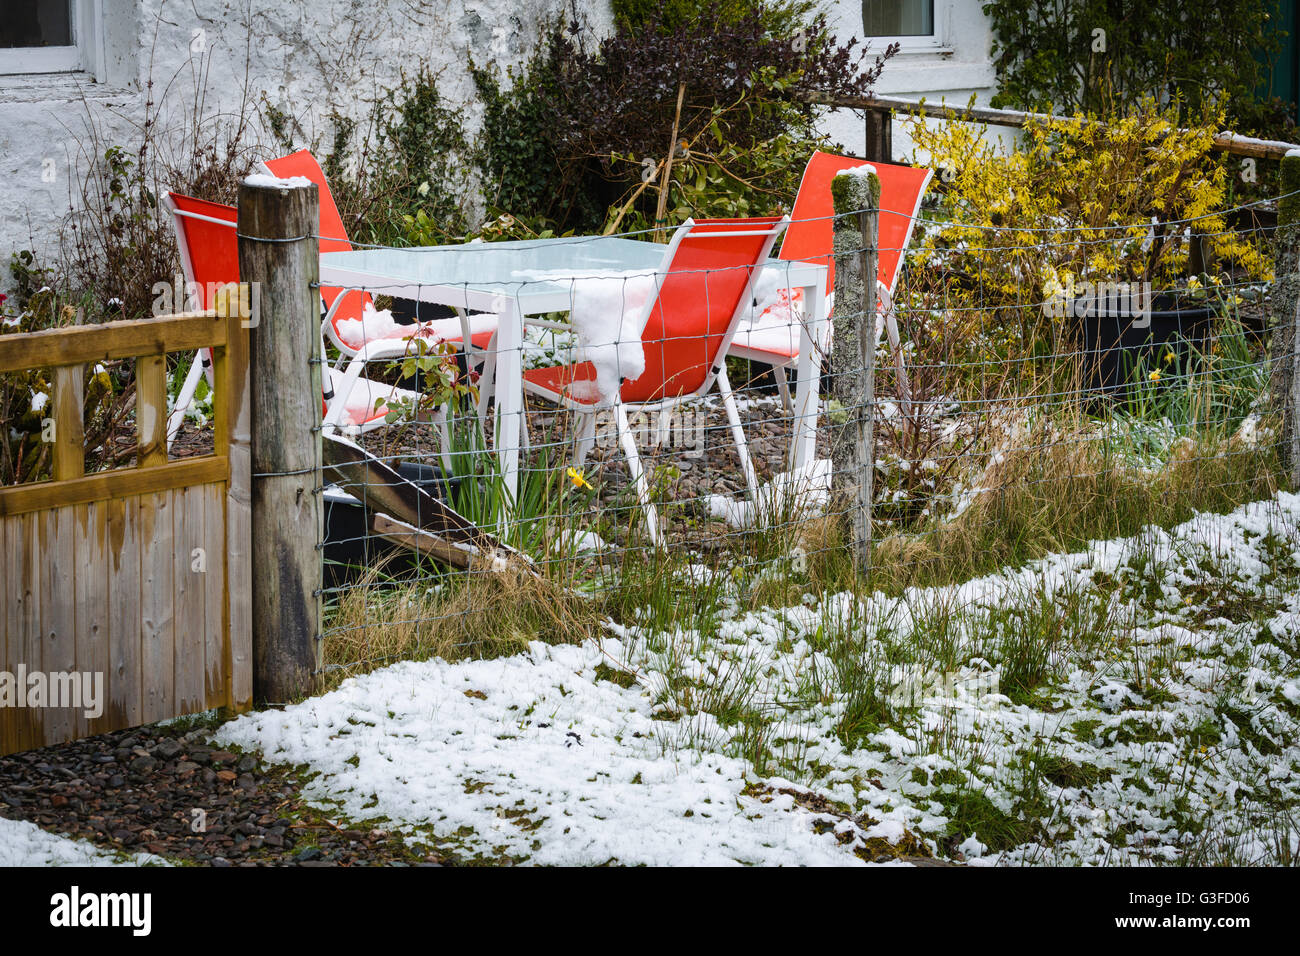 Garden furniture left outside after unseasonal snow fall. - Stock Image